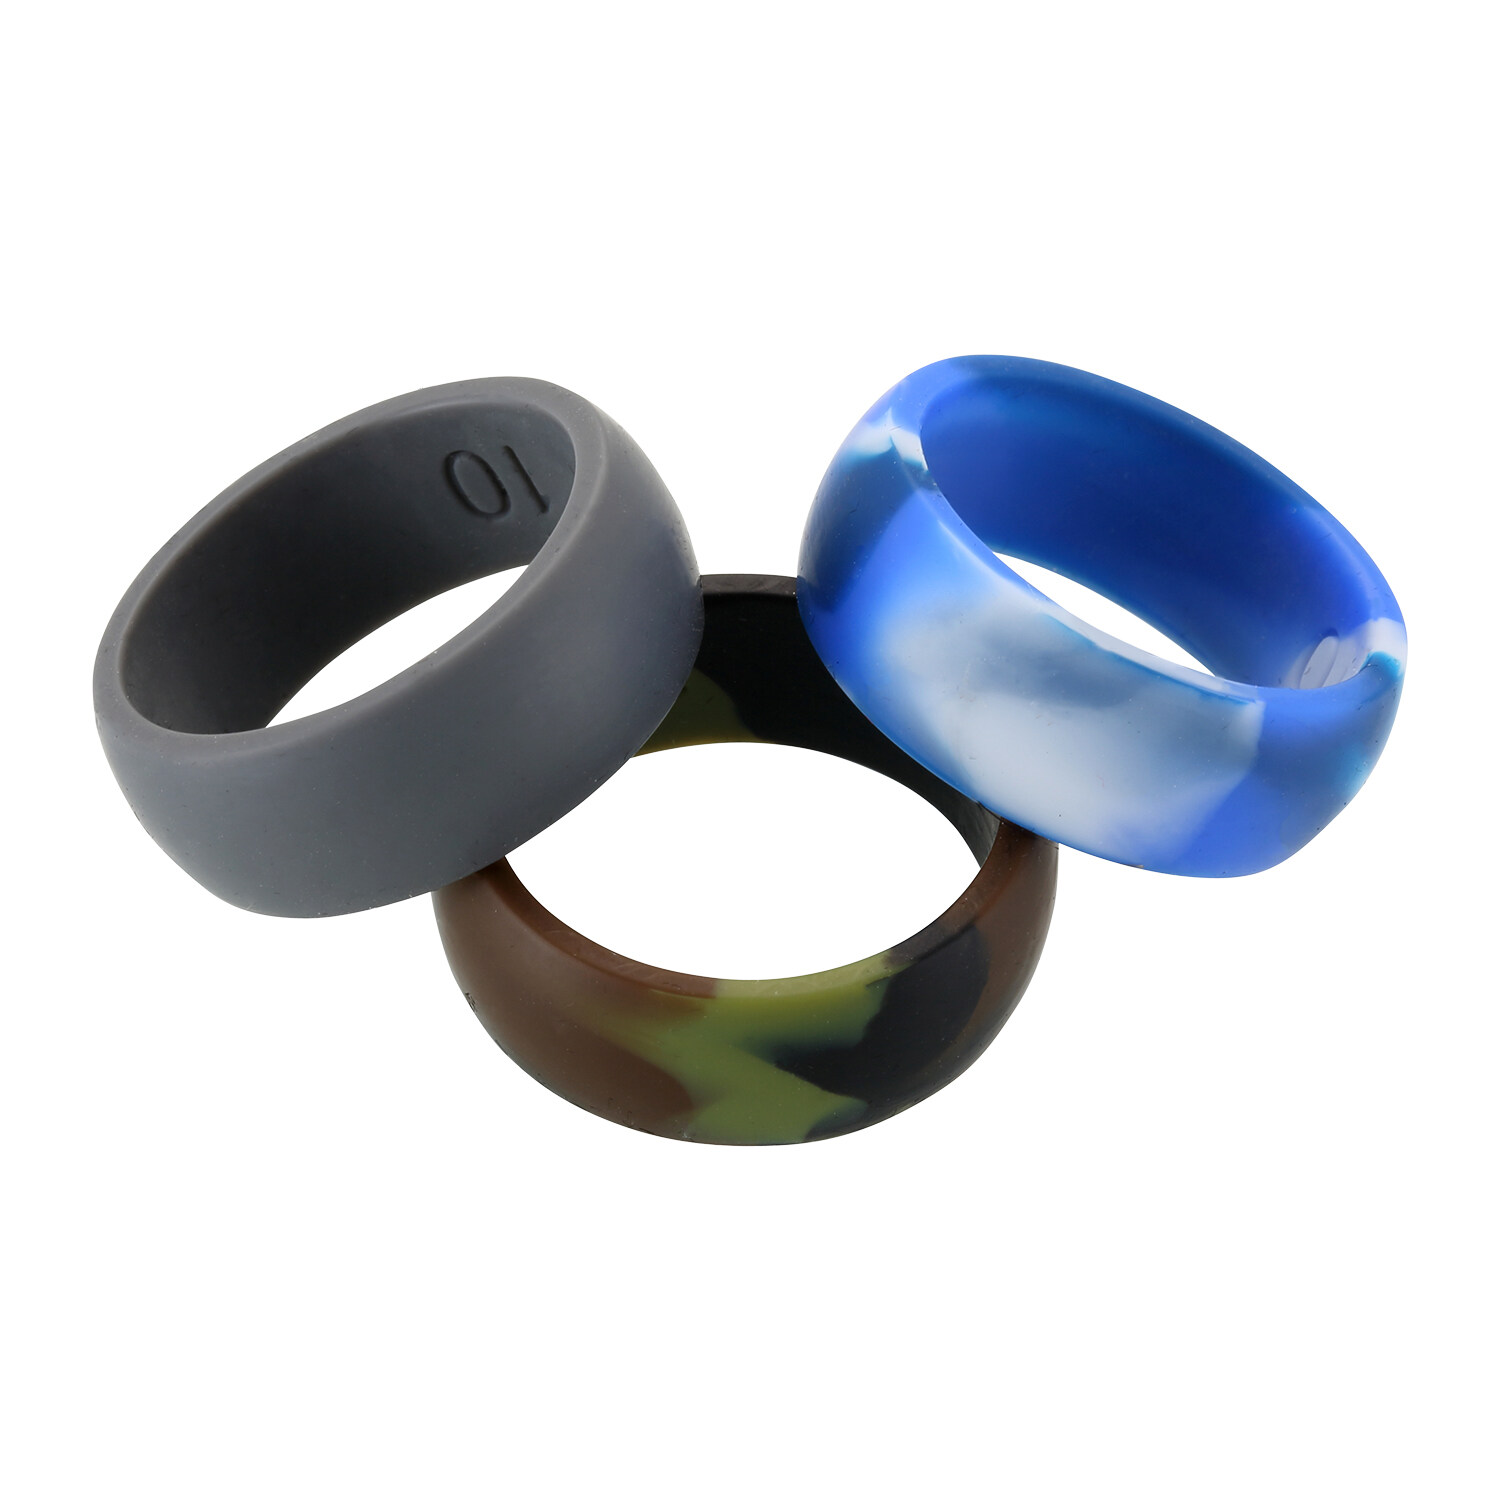 Silicone Wedding Ring.Breathable Silicone Wedding Band Medical Grade Silicone Wedding Rings Syourself